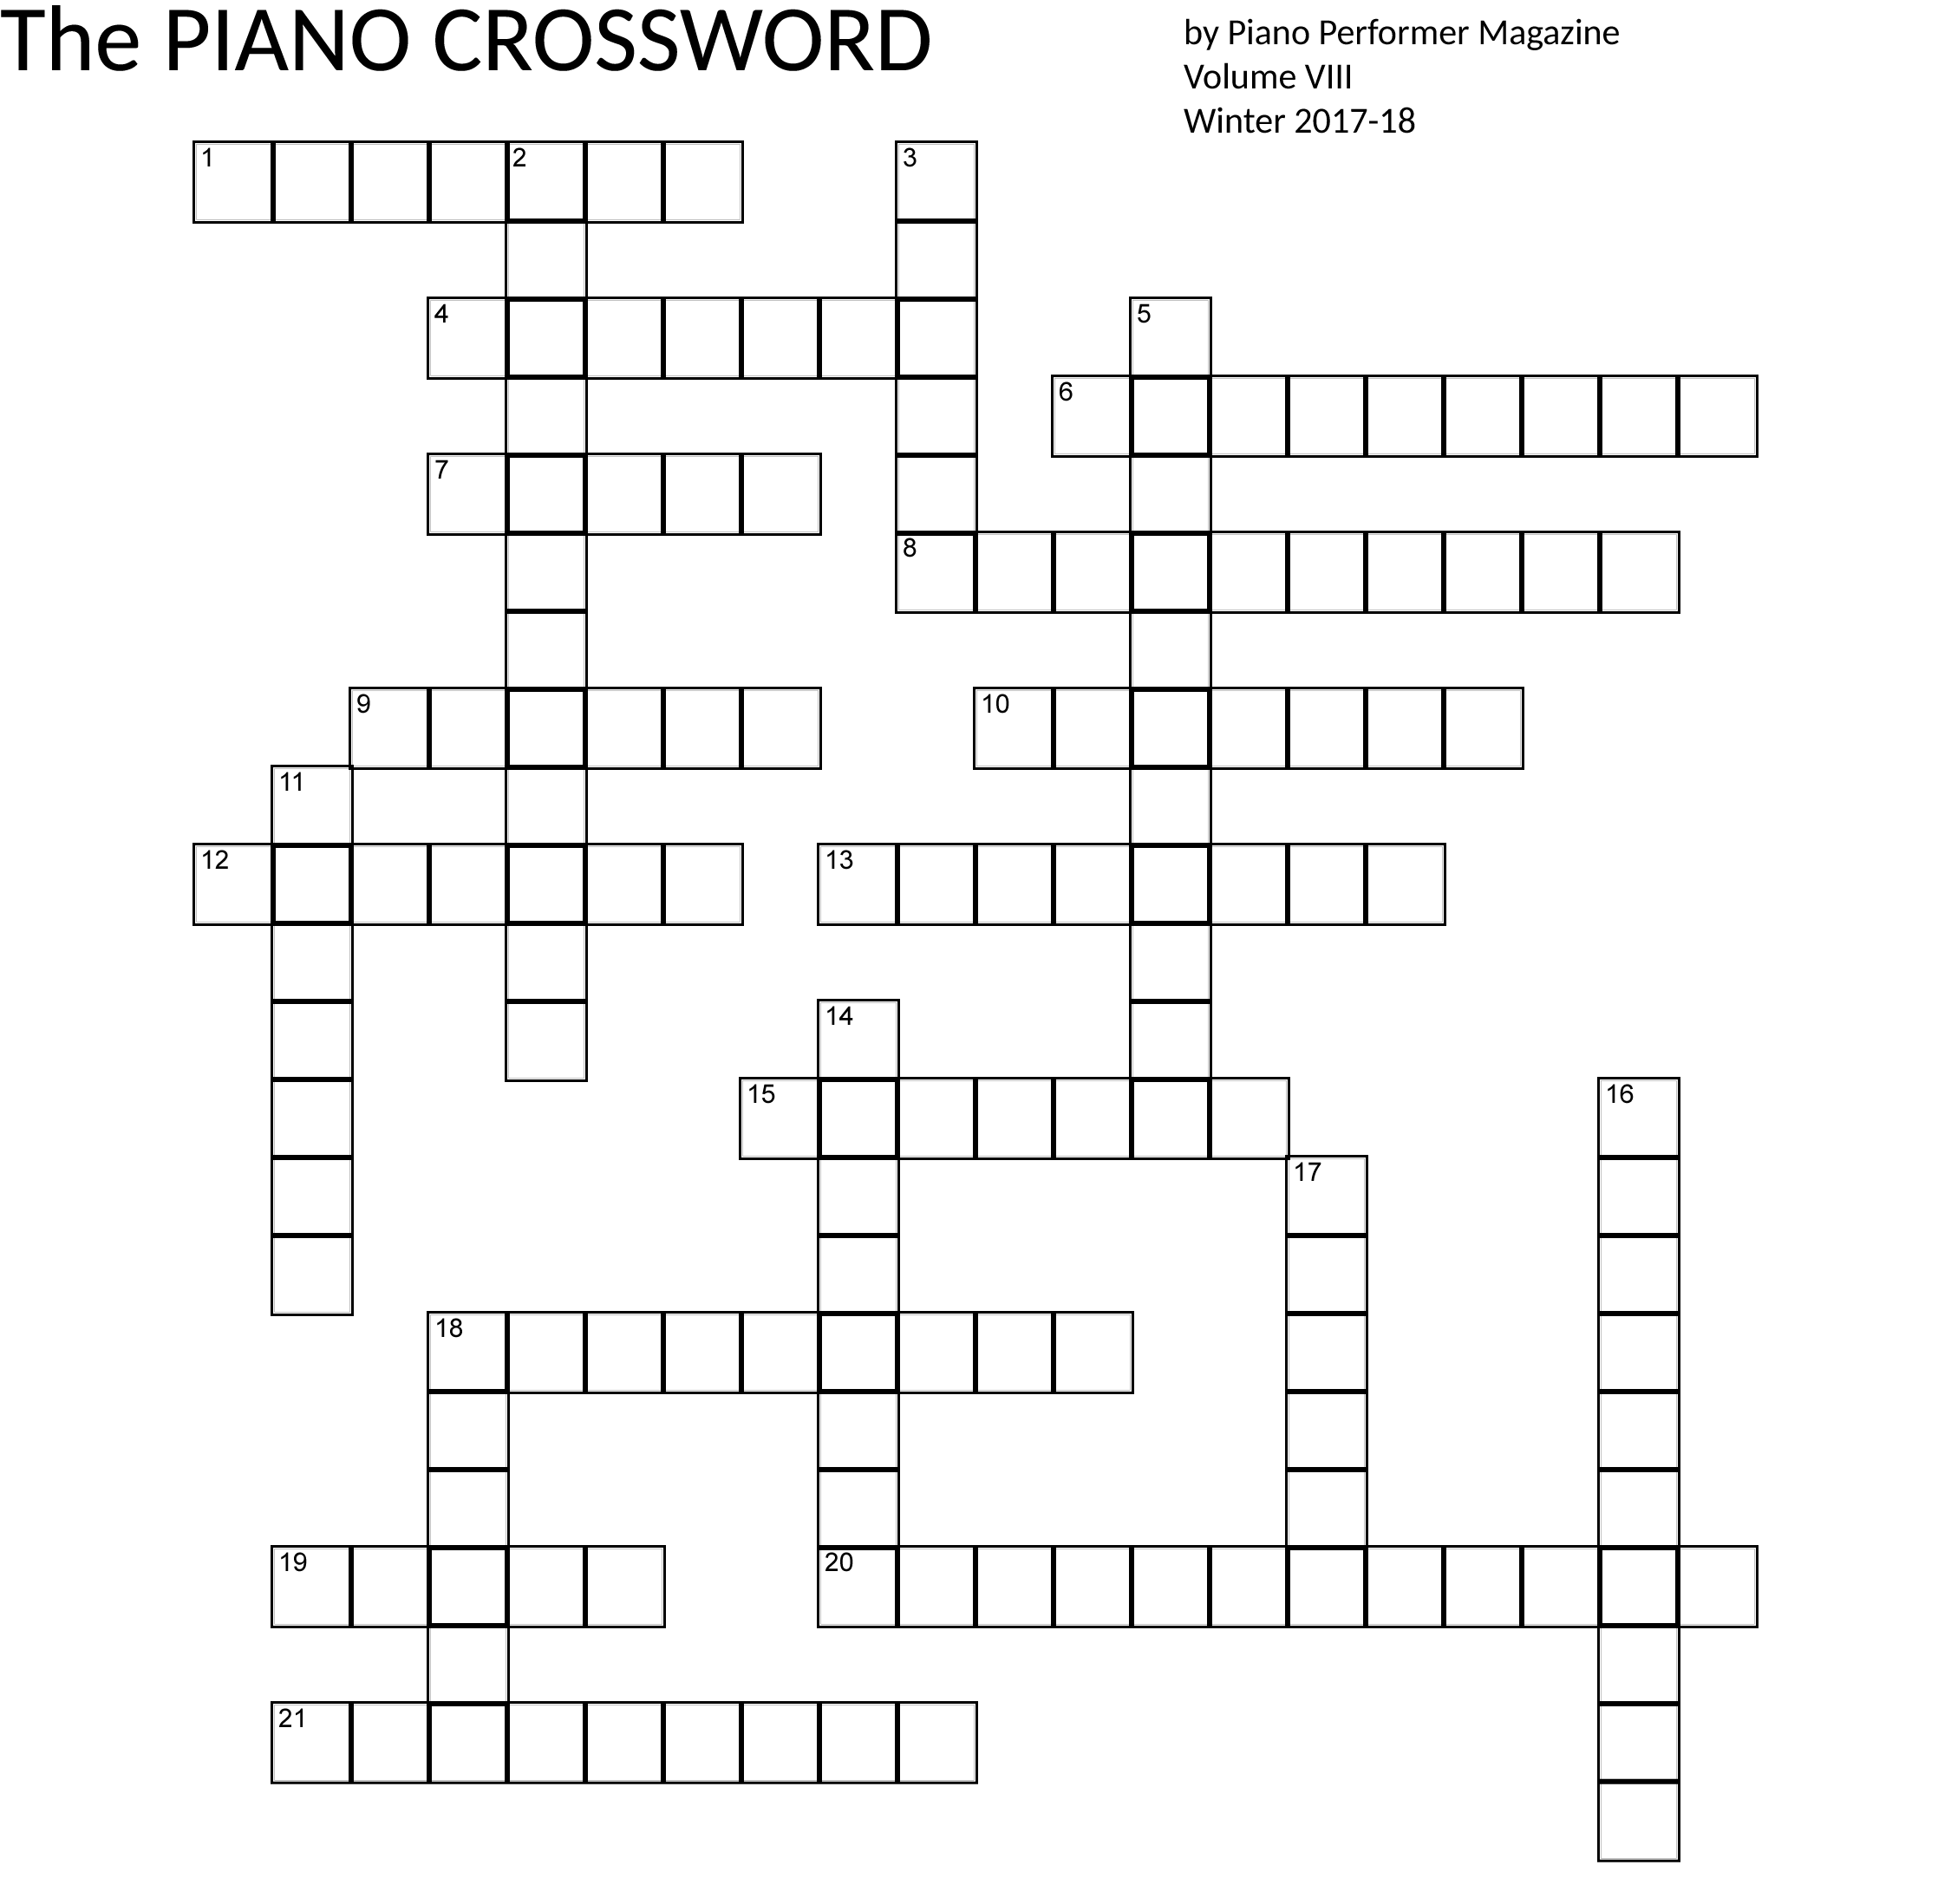 Piano performer magazine by american council of piano performers the names of our first five winners will be announced in the next issue of the piano performer magazine solutioingenieria Image collections